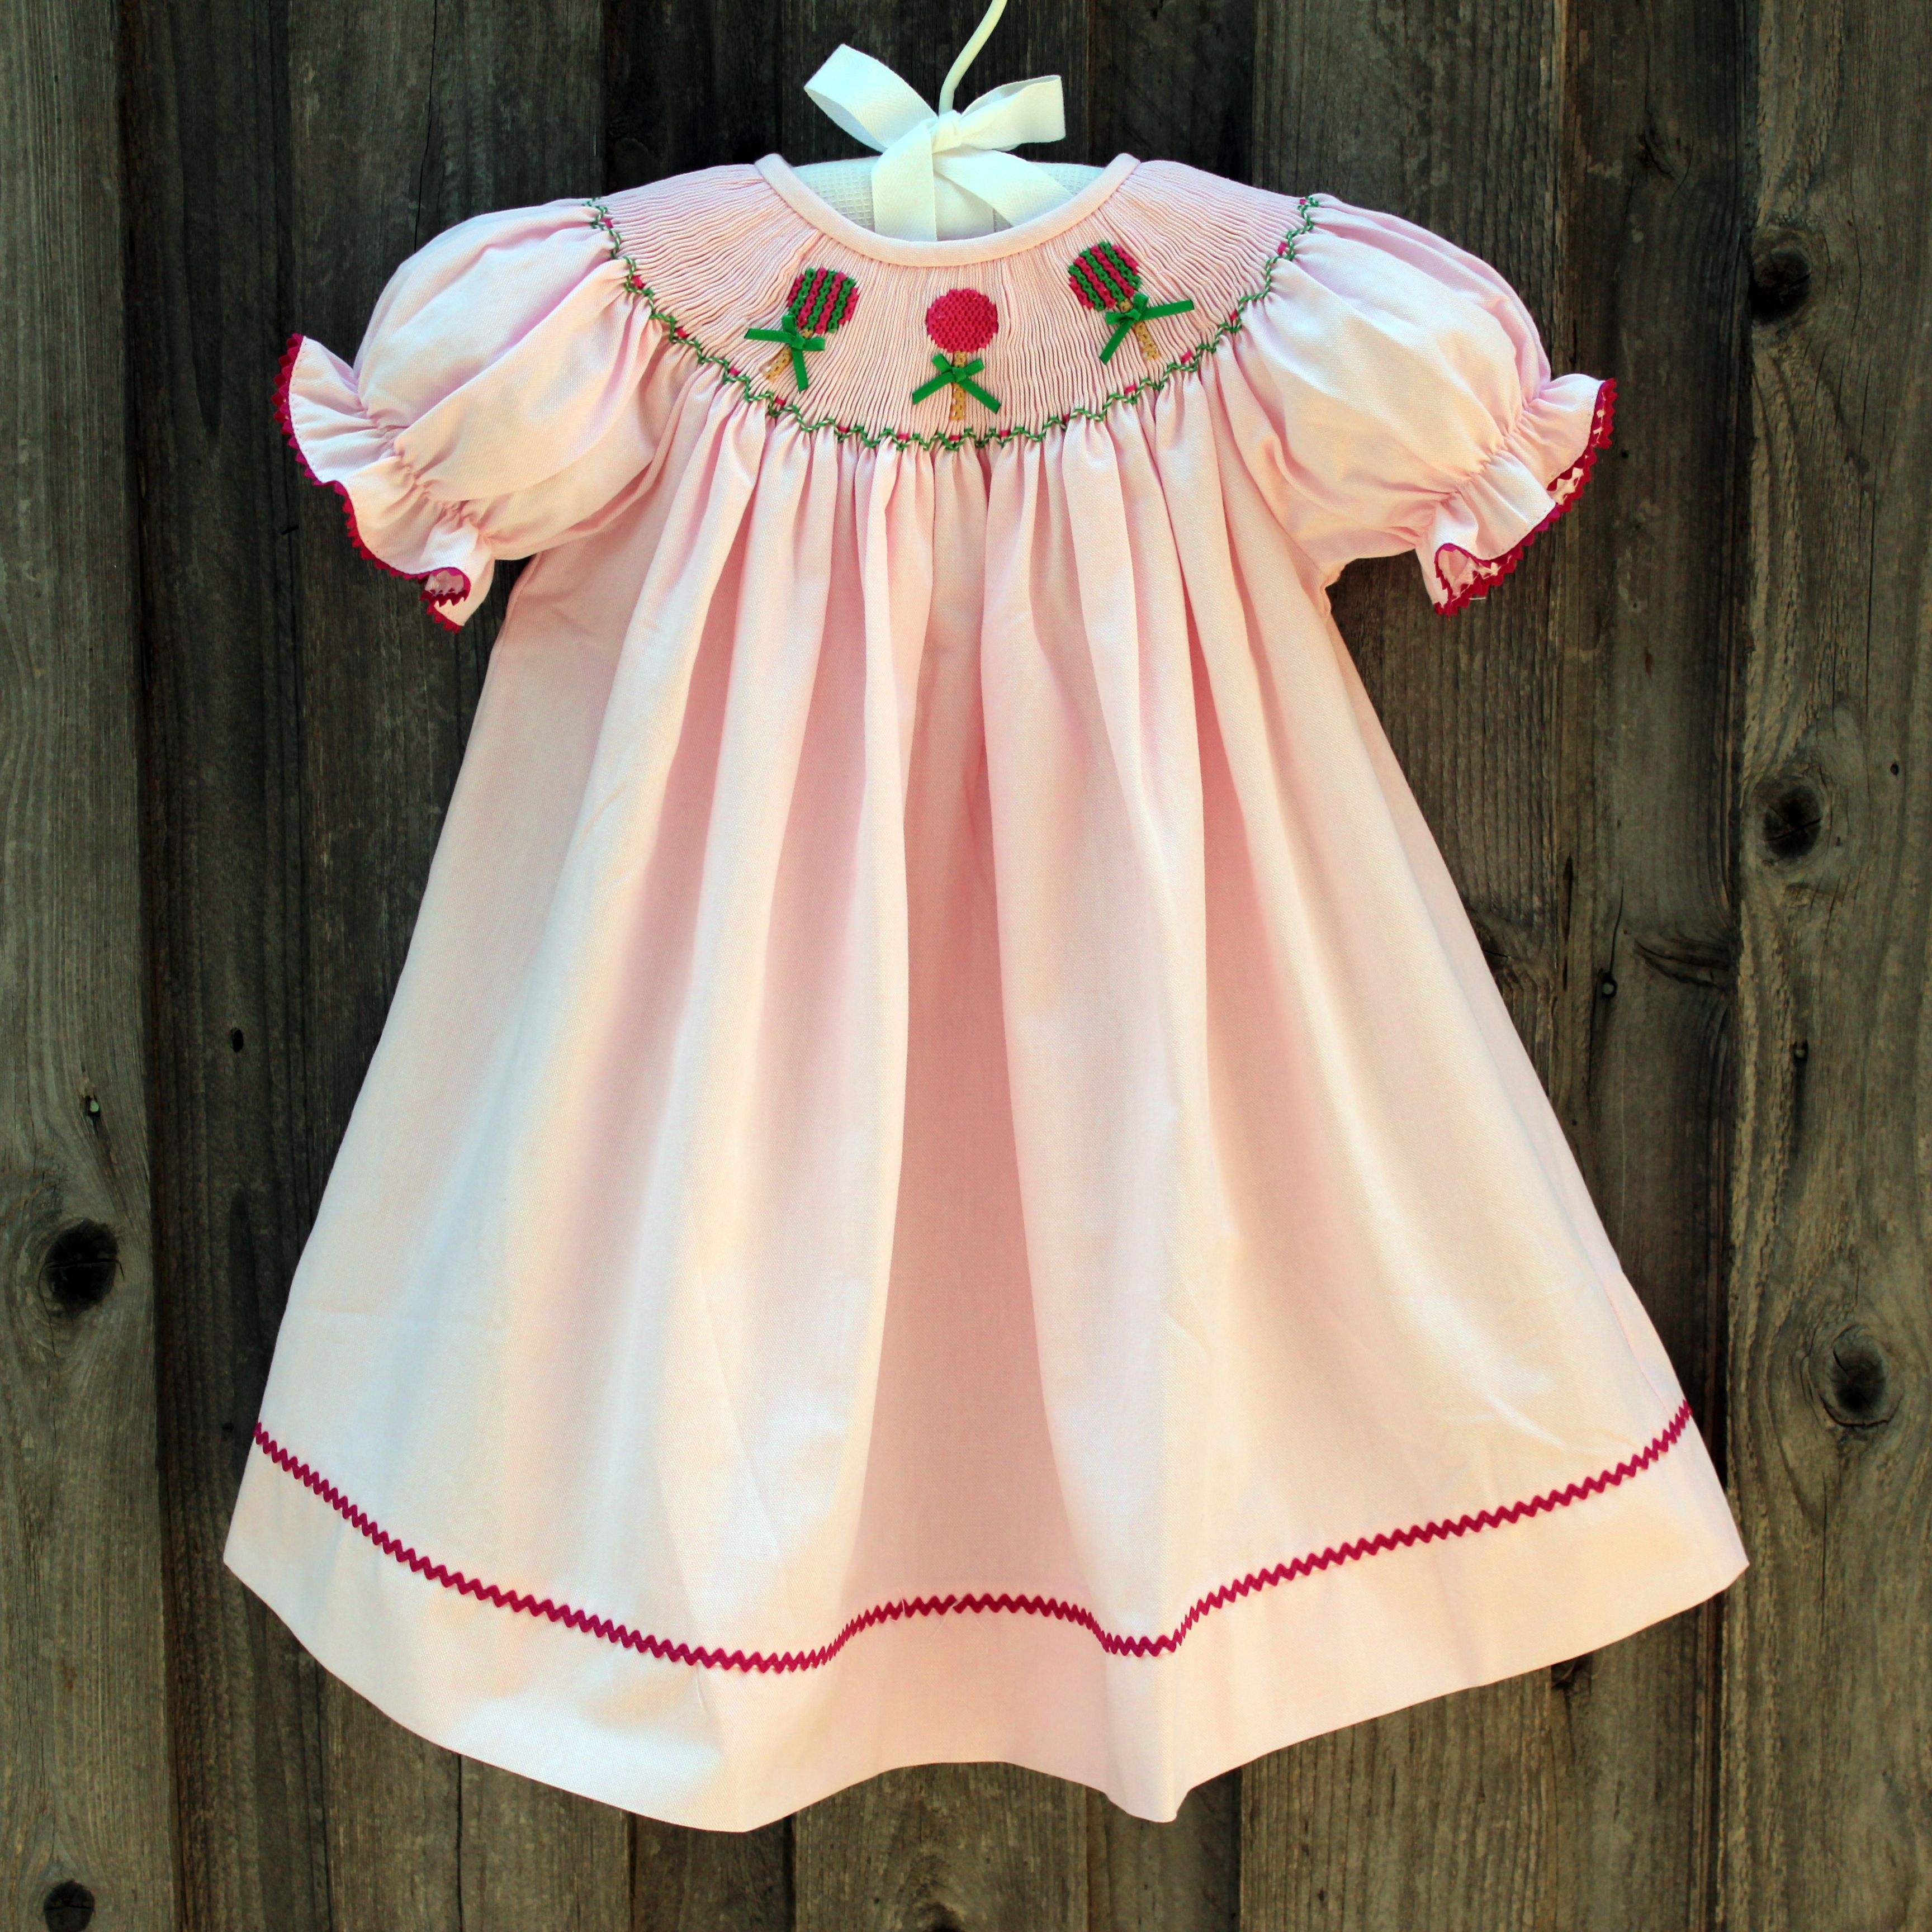 Smocked Sweets Bishop Dress from Smocked Auctions